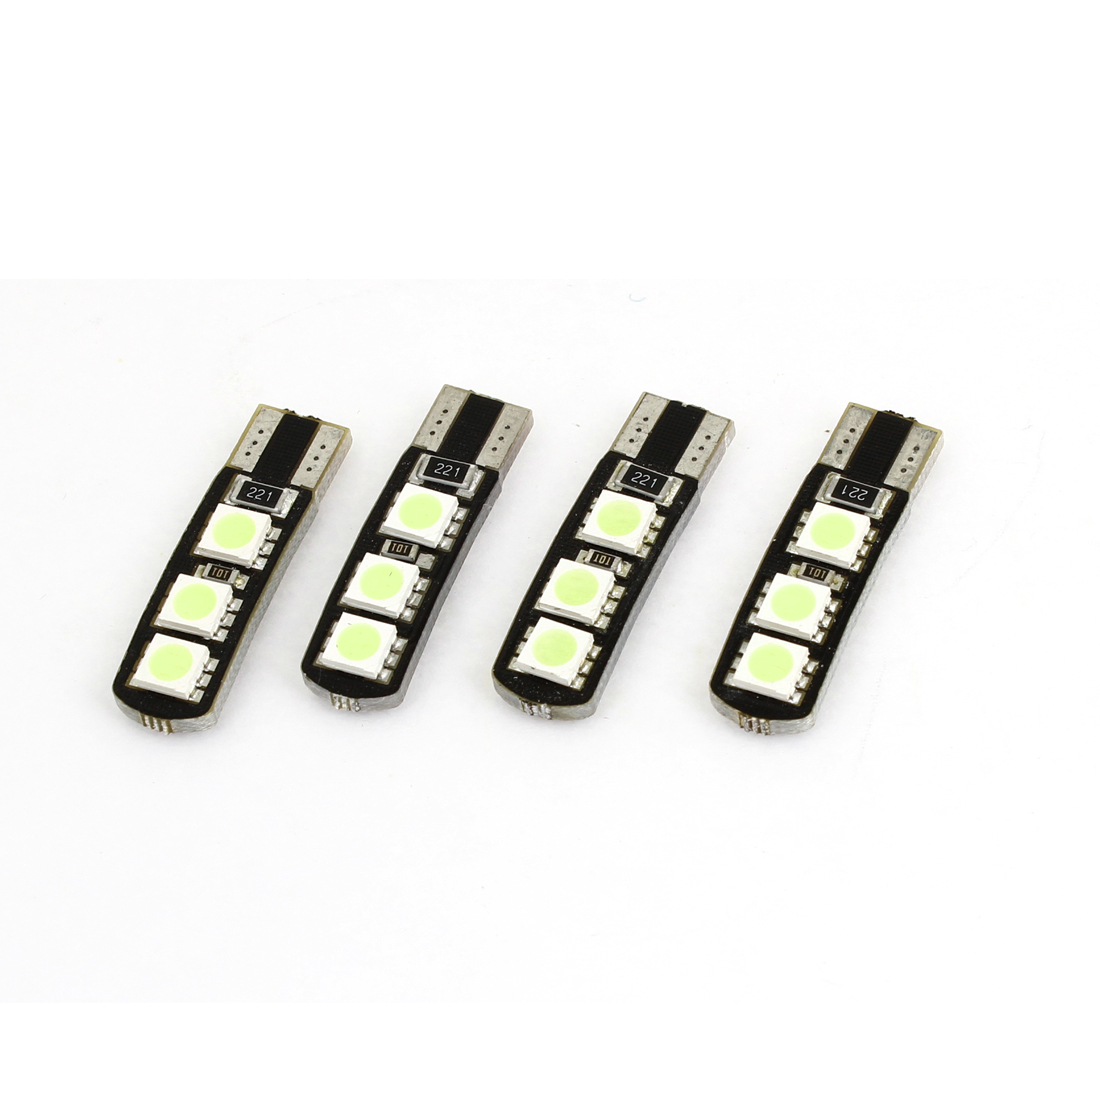 2 Pair T10 6 White 5050 SMD LED Auto Car Error Free Canbus Lamp